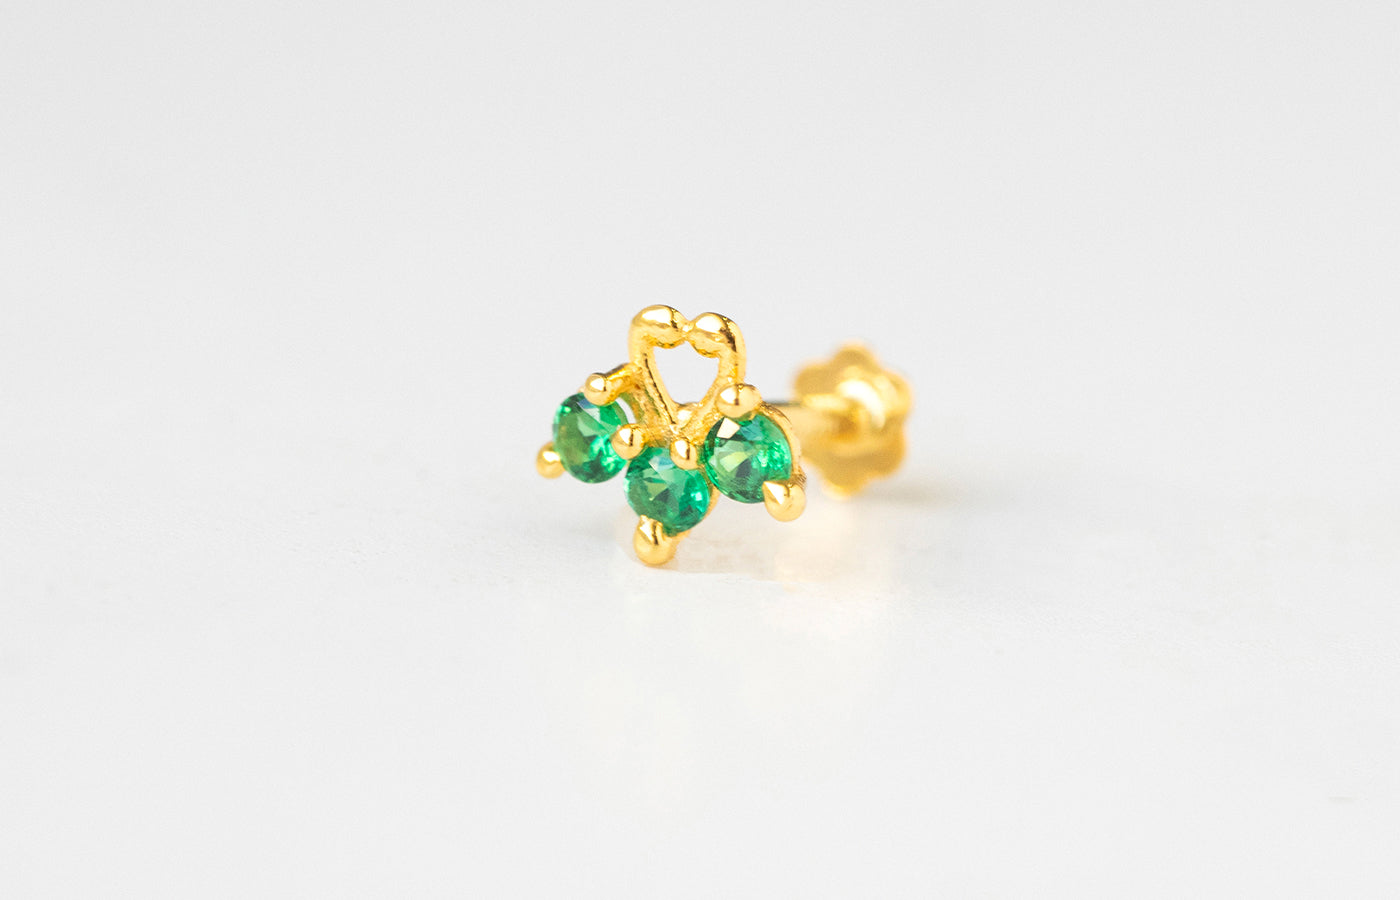 18ct Yellow Gold Screw Back Nose Stud set with three green Cubic Zirconias NIP-5-570f